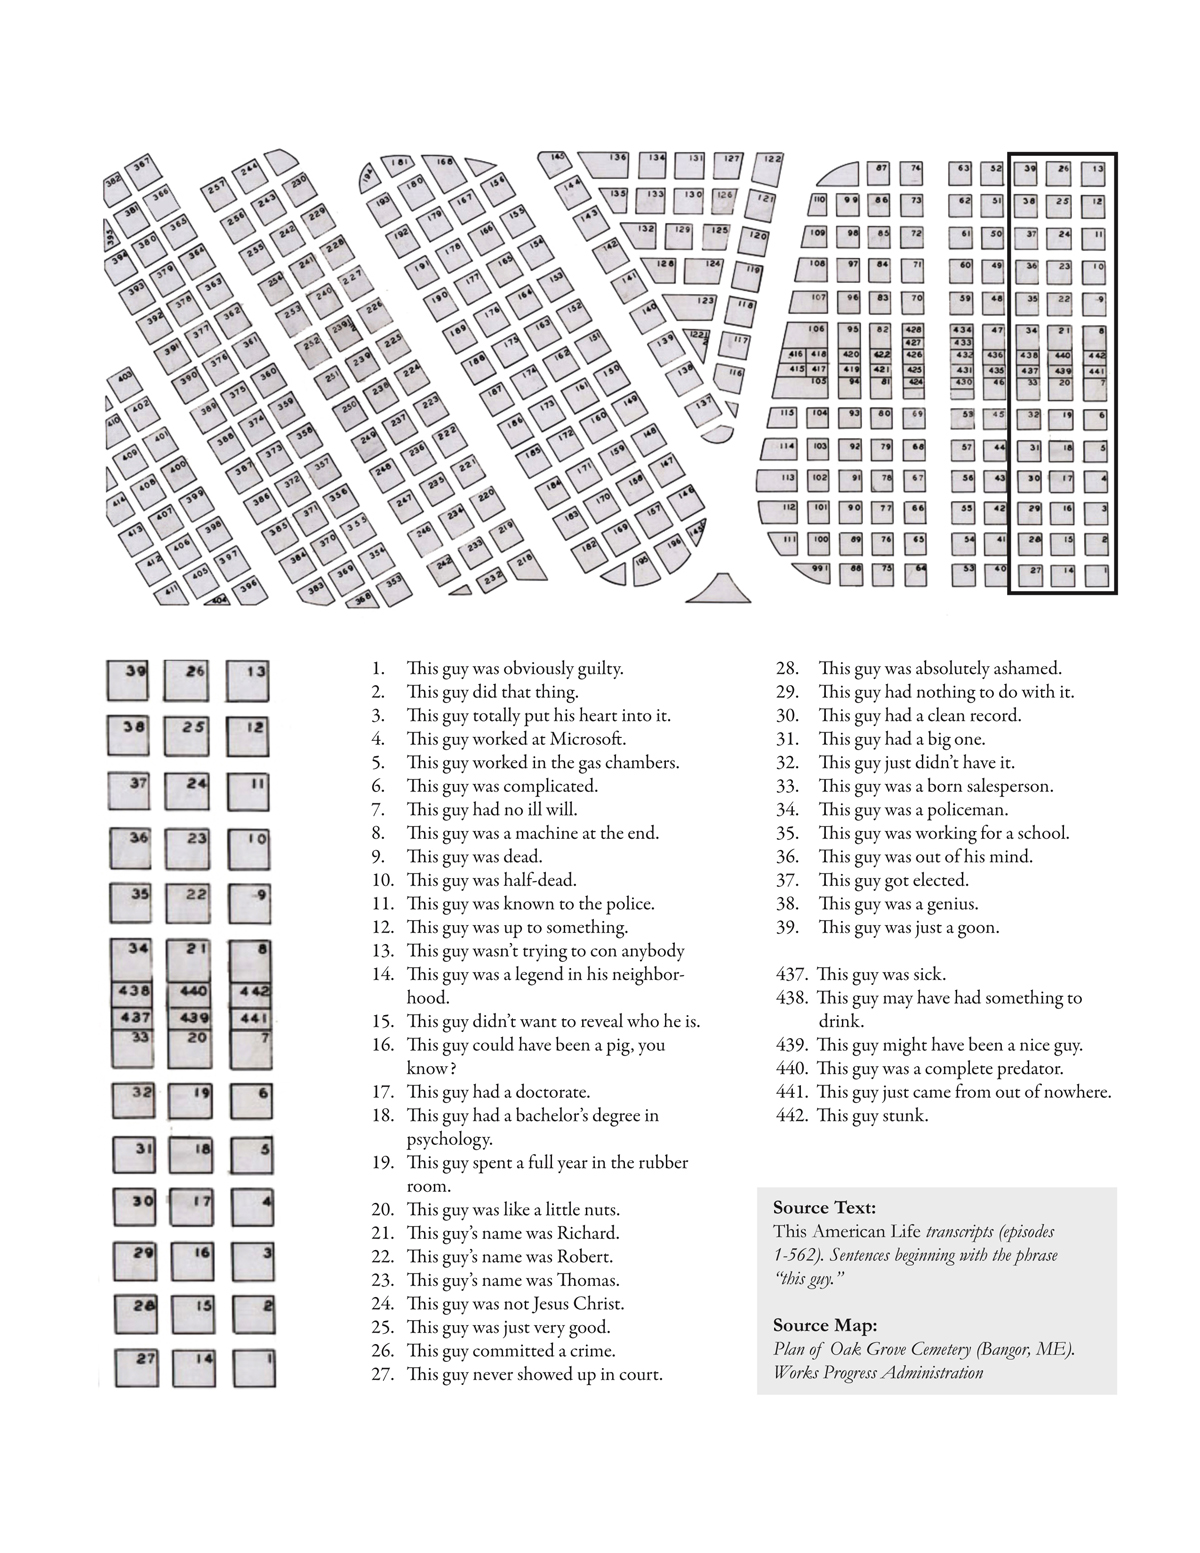 Cemetary map with accompanying text